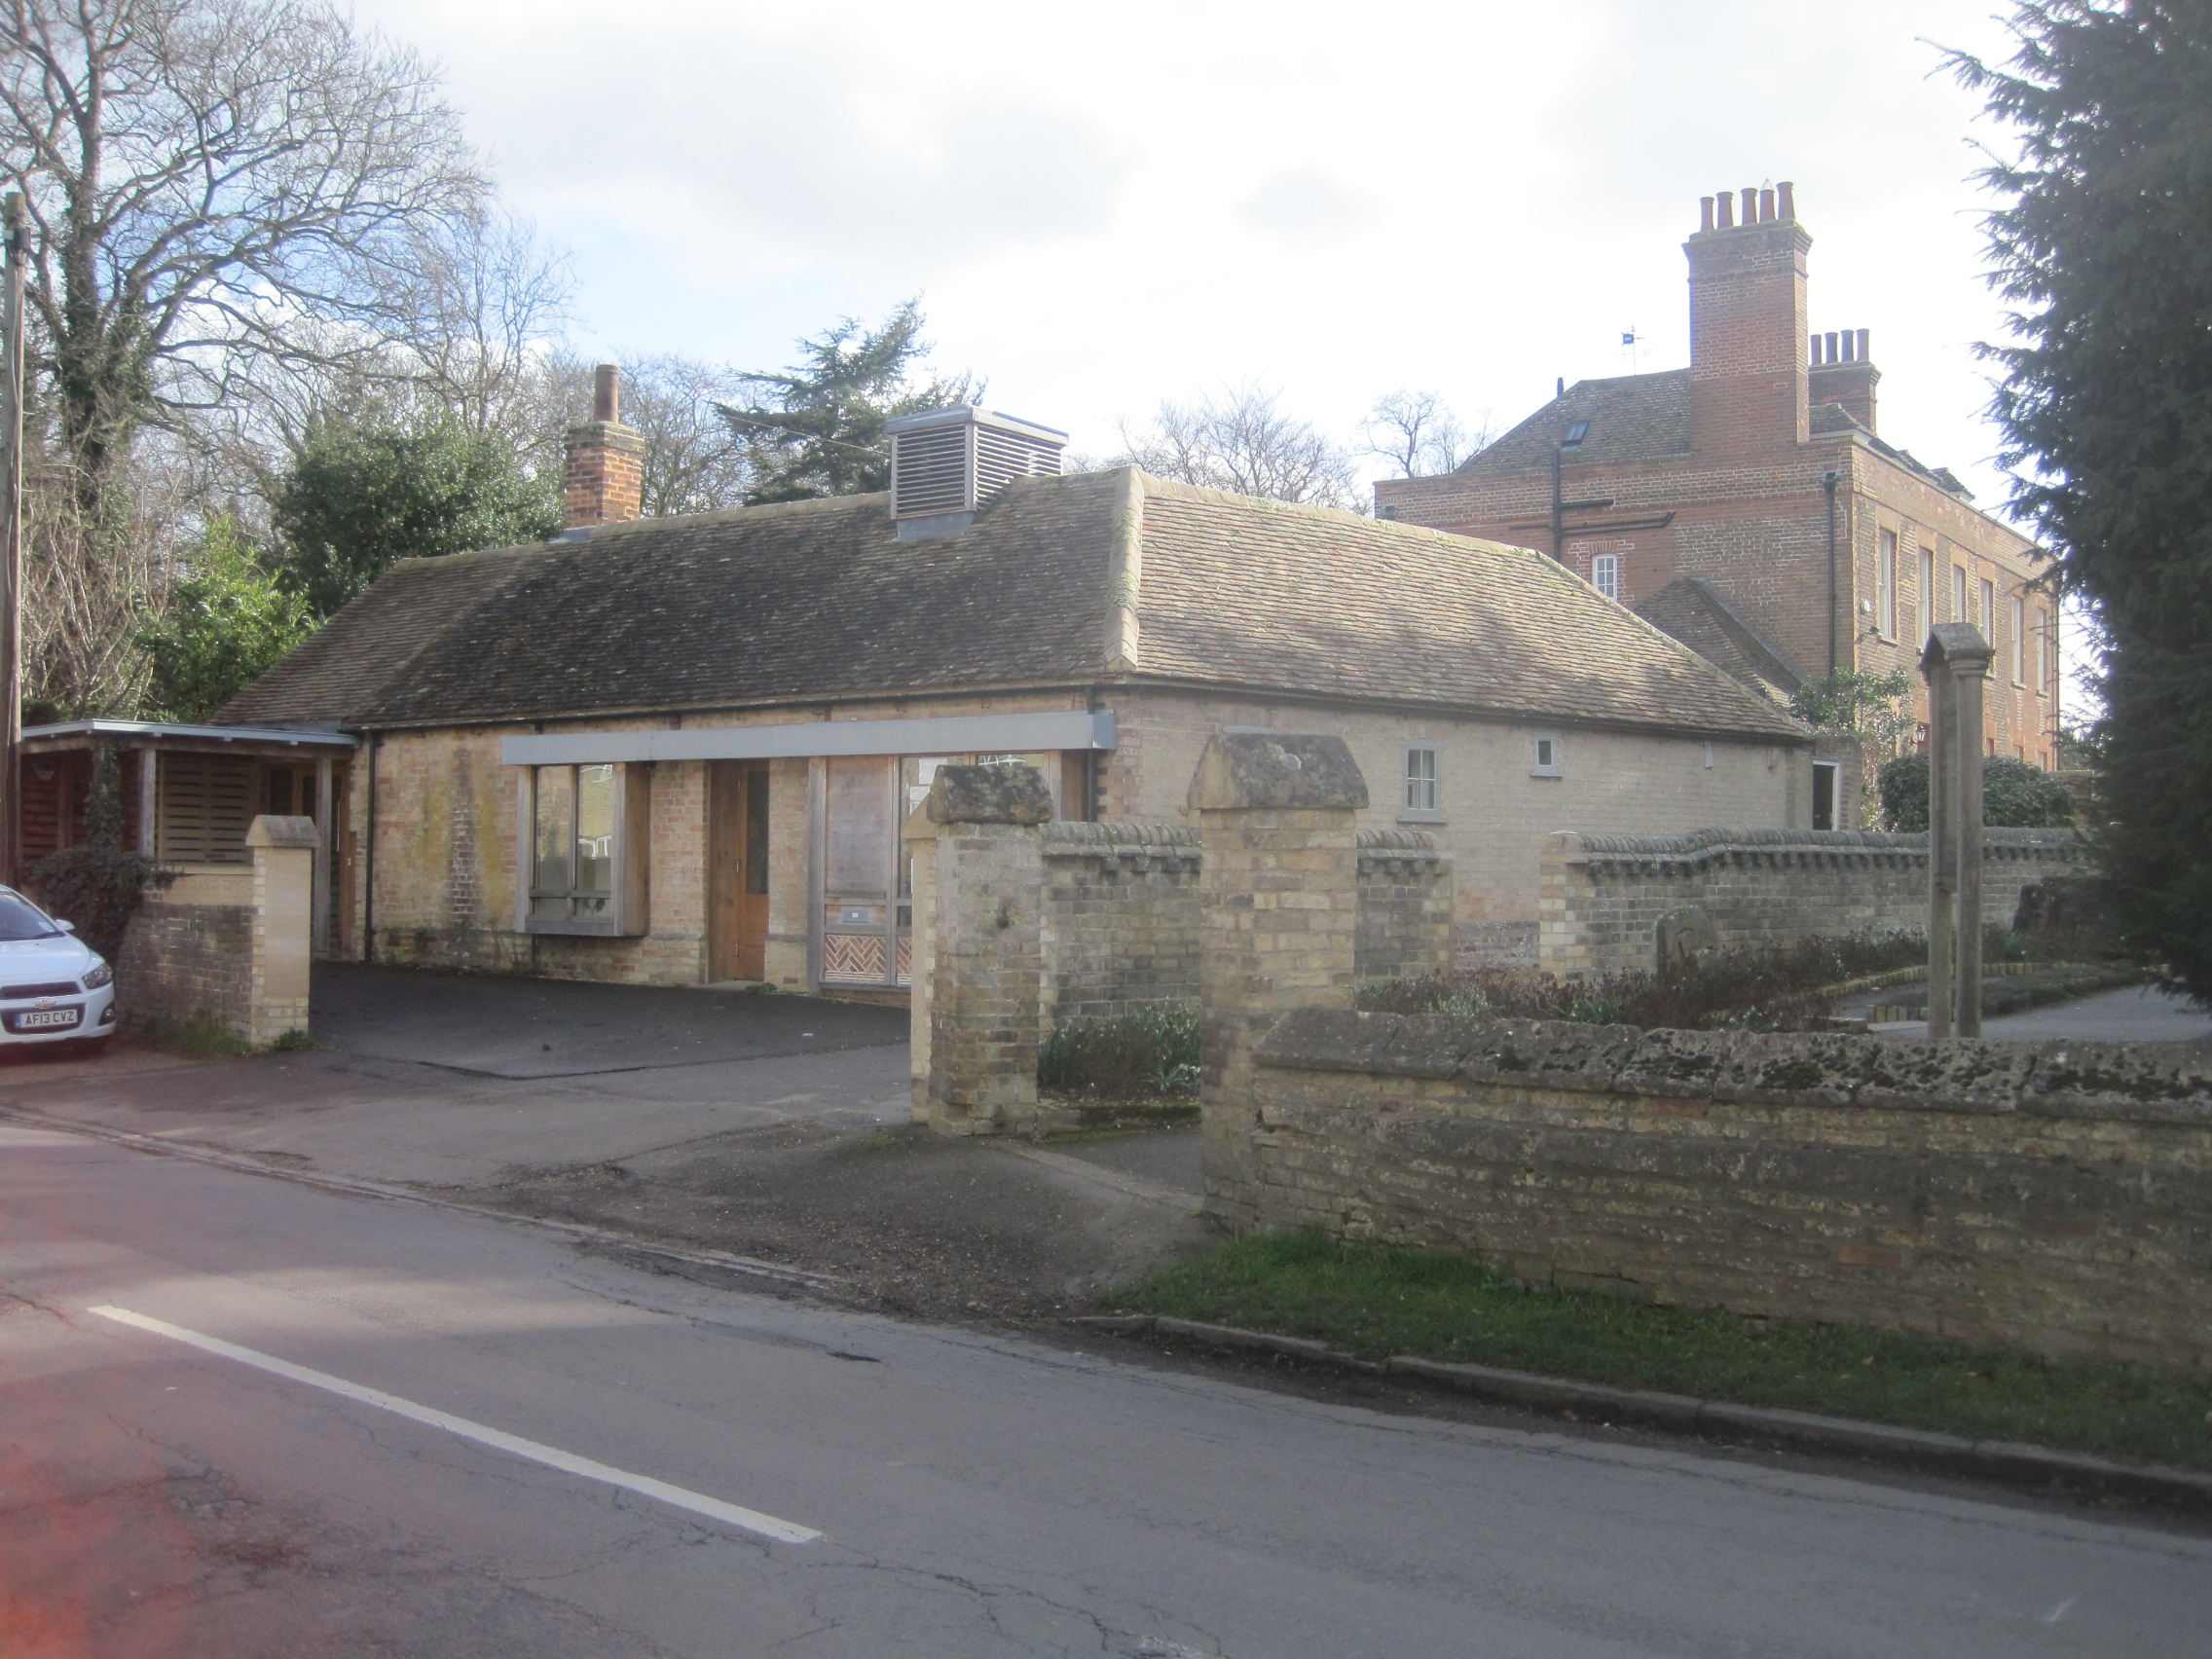 The Bakehouse, Trumpington